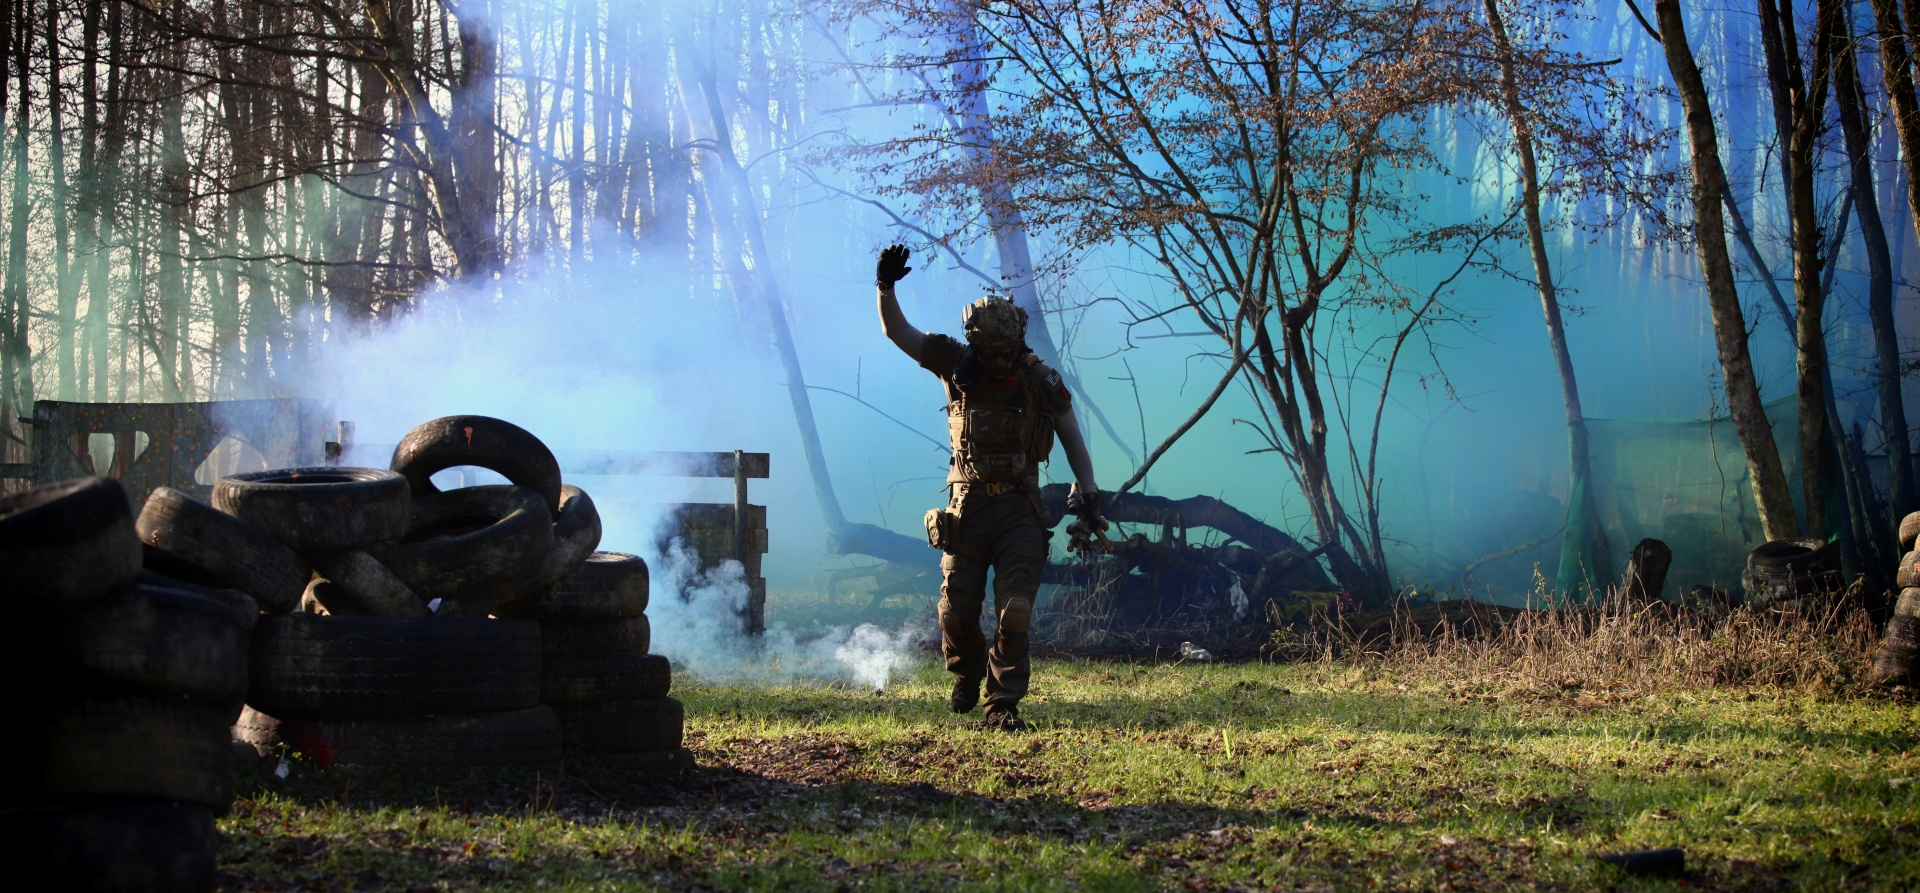 Half Day Paintballing Experience - Leeds